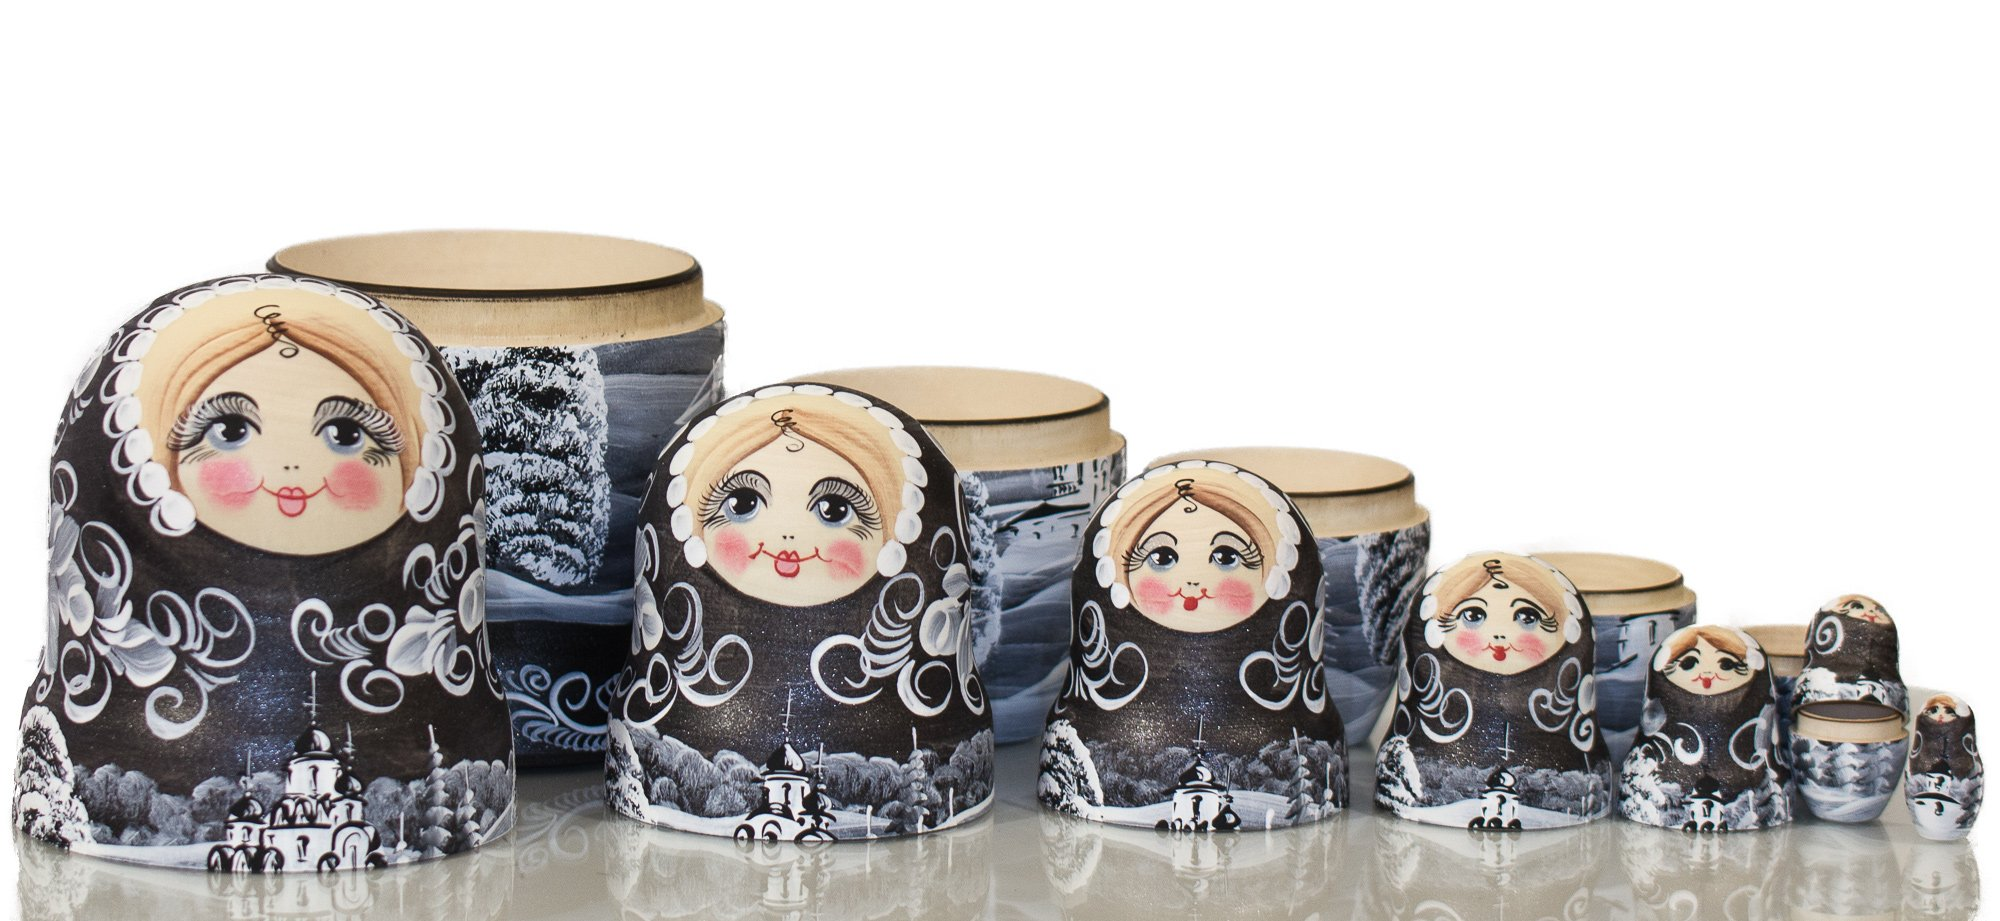 Russian Nesting Doll - ''Winter`s Tale'' - Hand Painted in Russia - MOSCOW KREMLIN GIFT BOX - Wooden Decoration Gift Doll - Traditional Matryoshka Babushka (8`` (7 dolls in 1), Silver Night) by craftsfromrussia (Image #7)